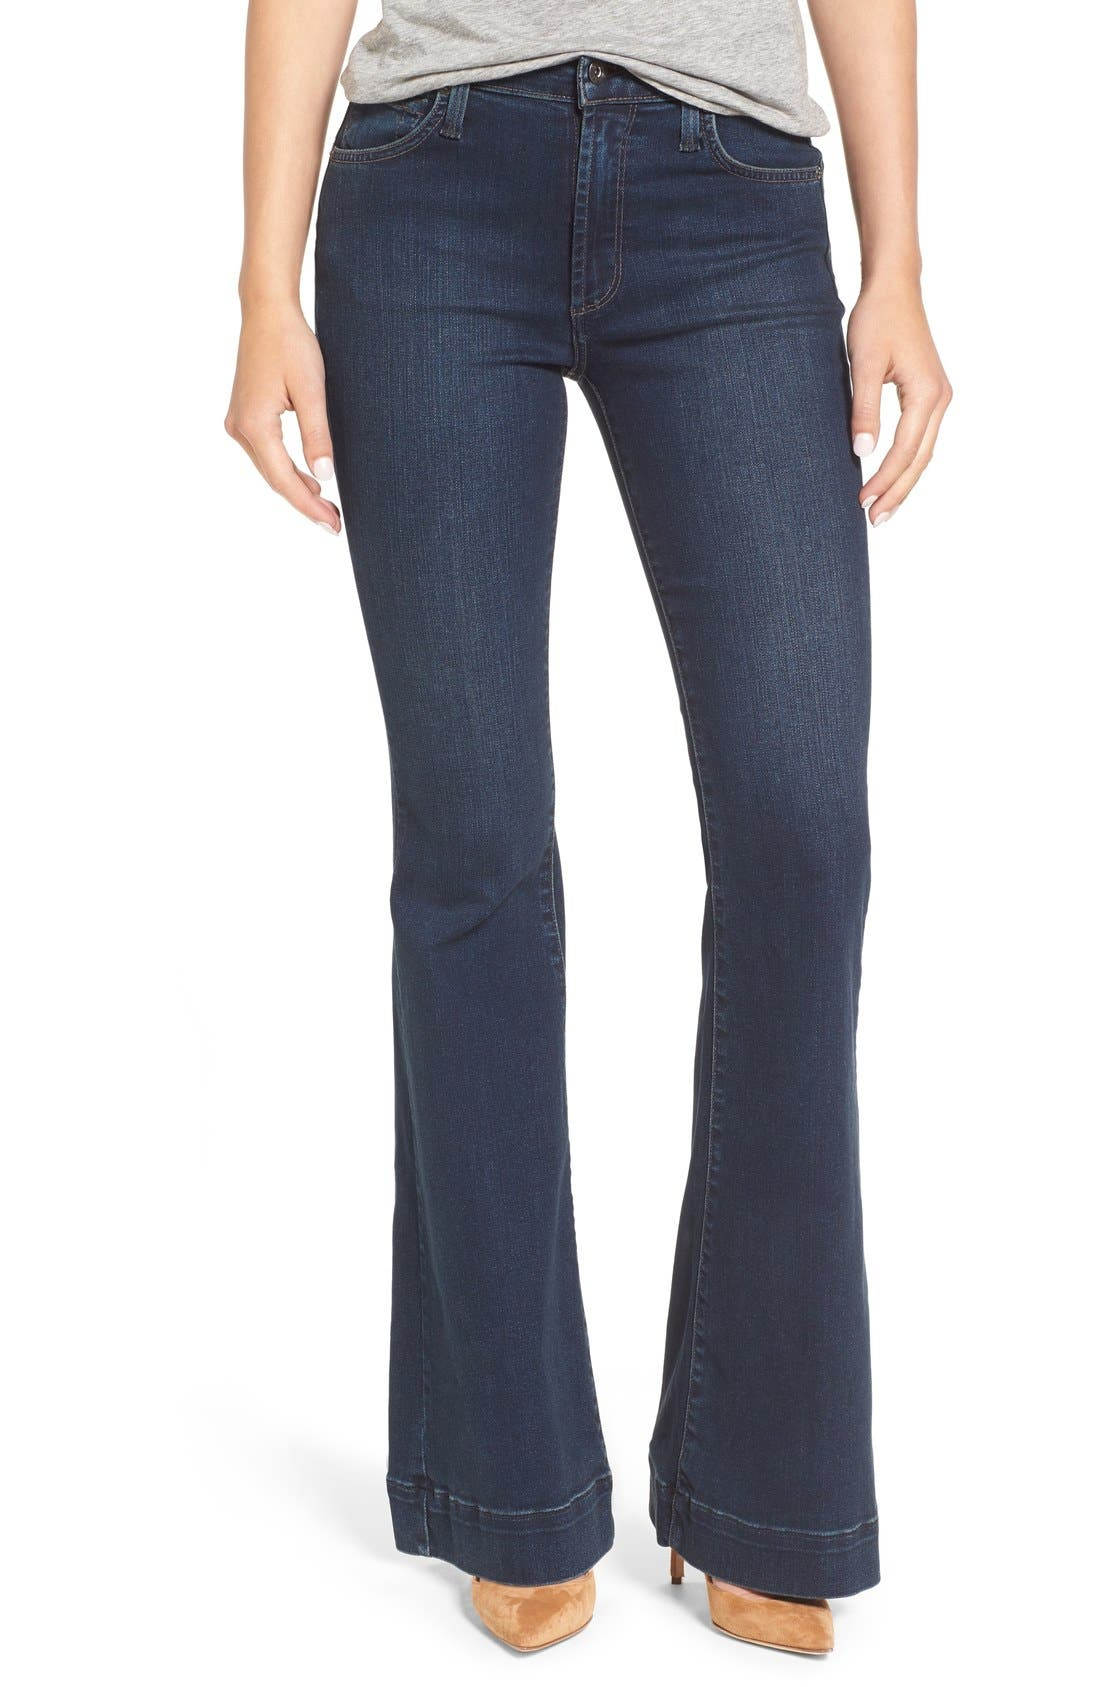 JAMES JEANS 'Shayebel' Flare Denim Trousers, Main, color, 401